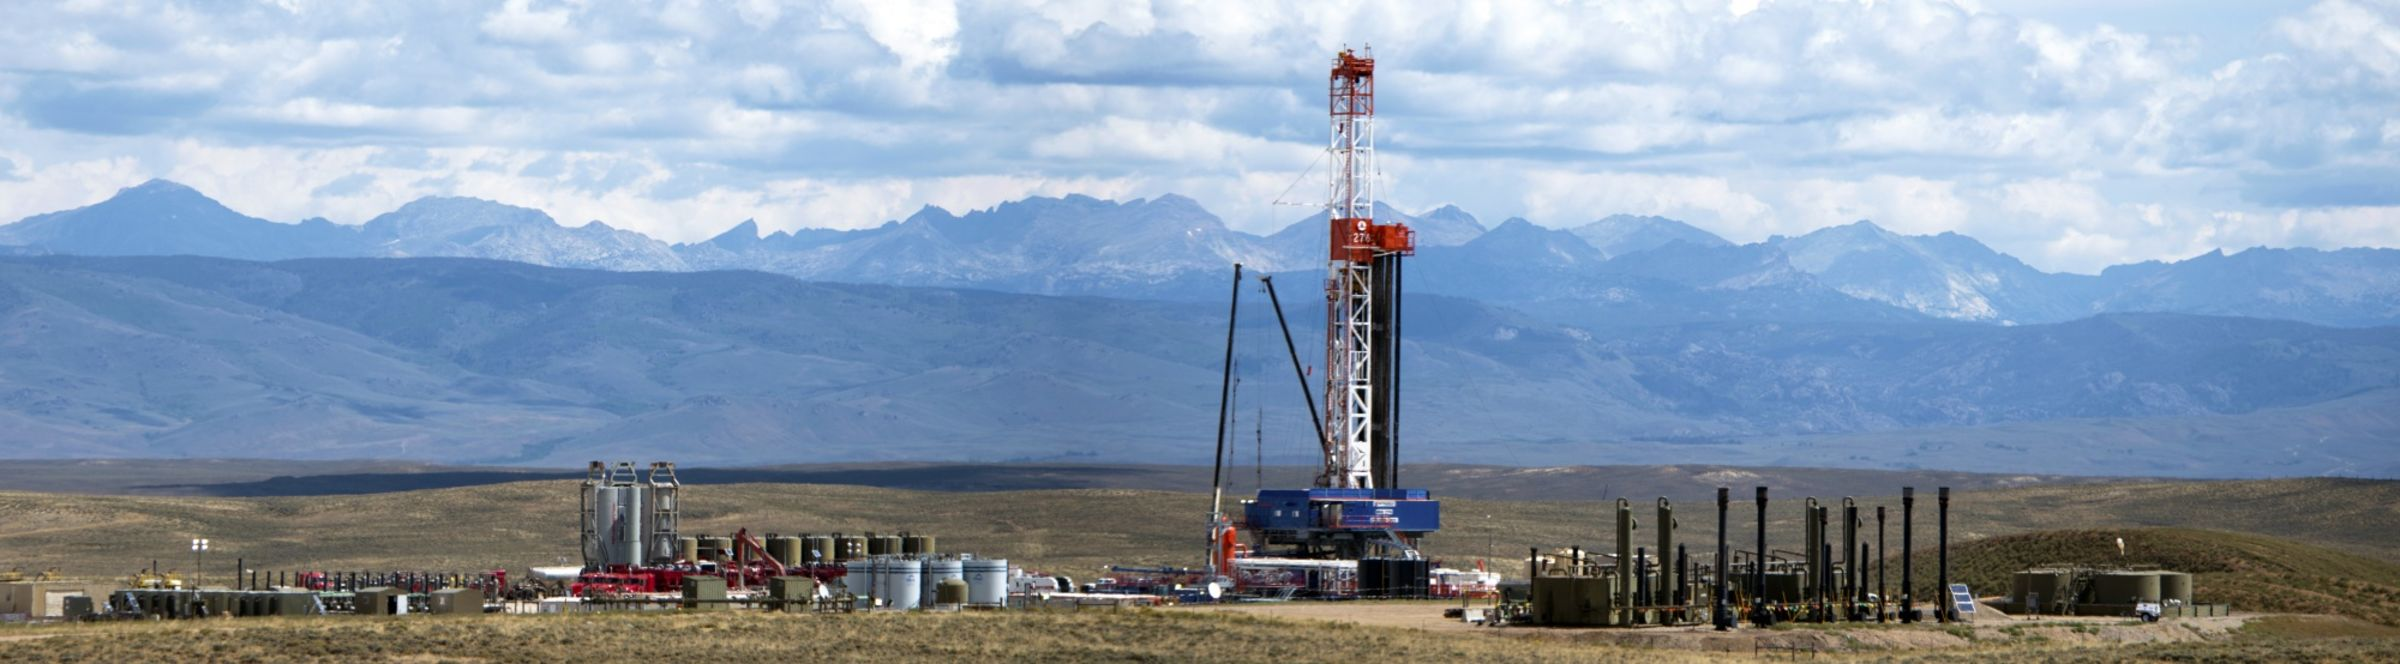 A natural gas field, near Pinedale, Wy.